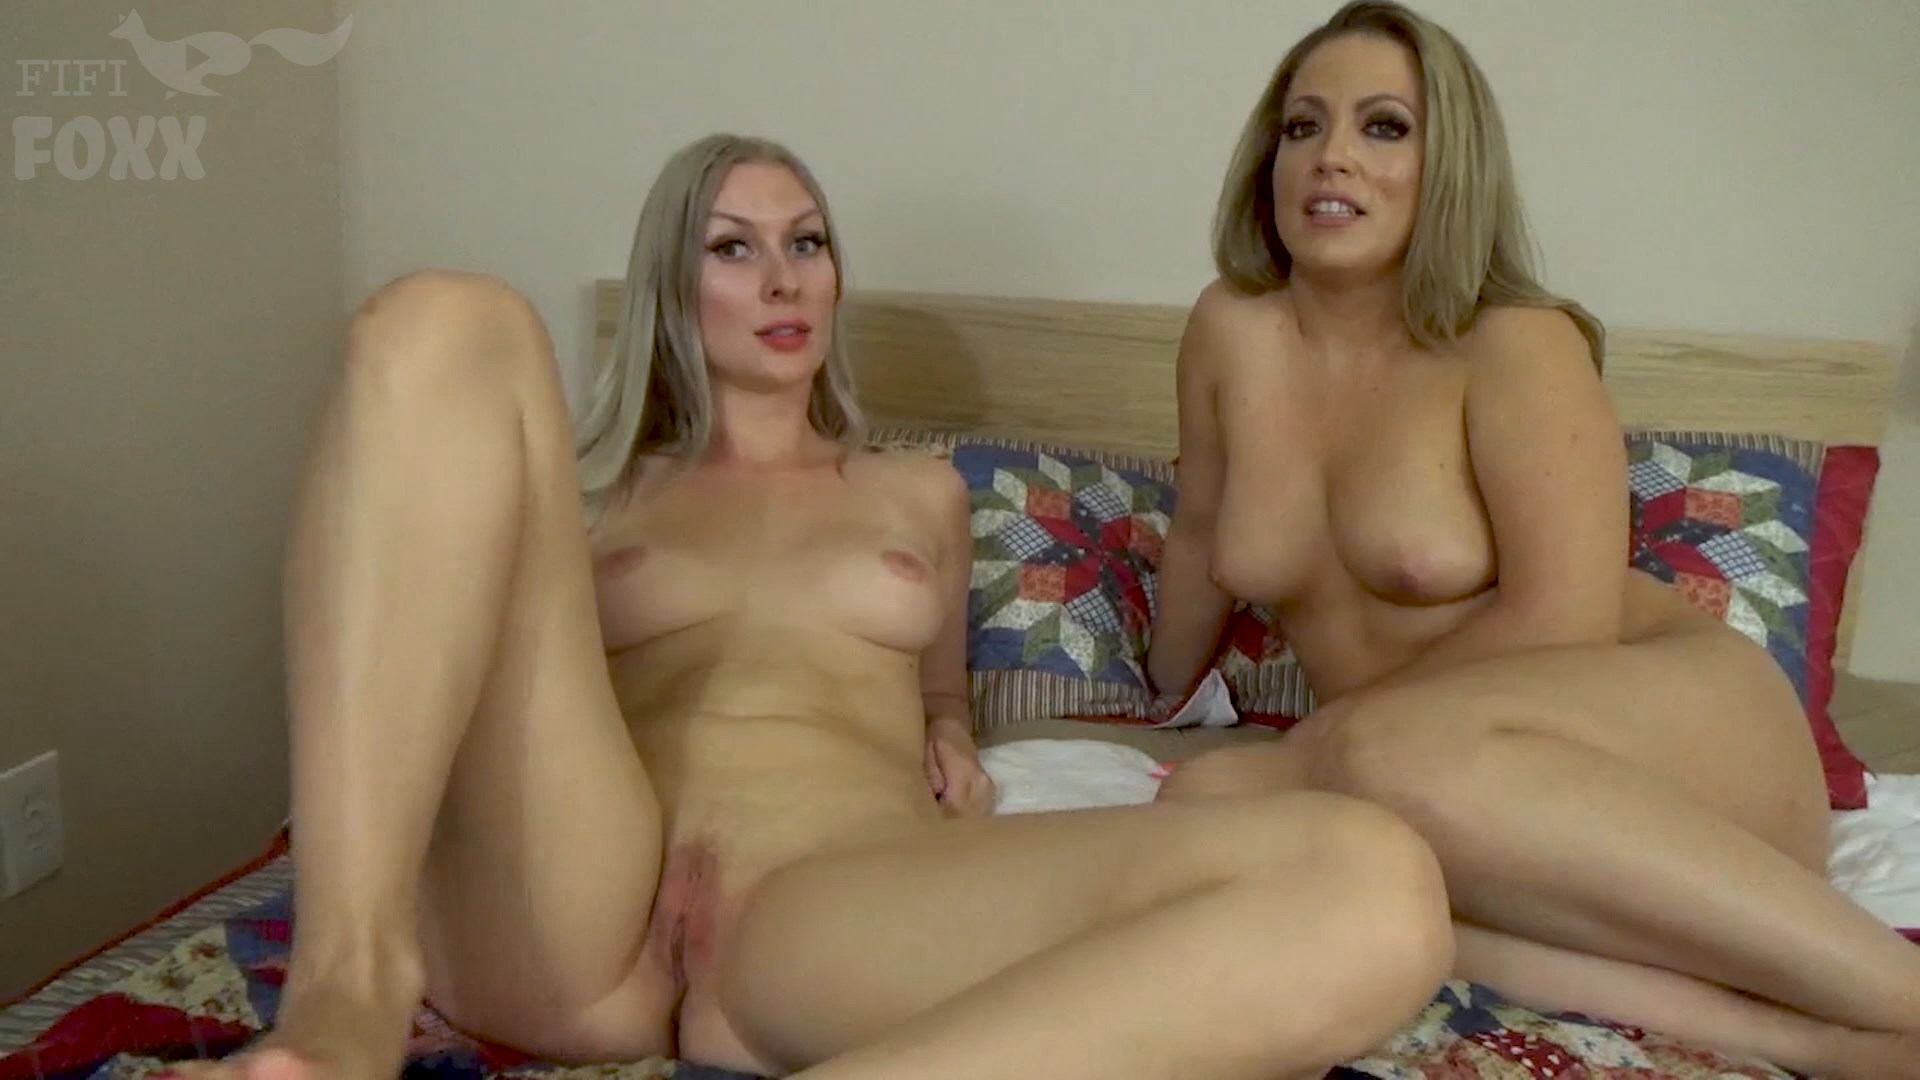 Fifi Foxx Fantasies - Sydney Paige & Carmen Valentina - Lesbian Mothers Let Embarrassed Son Practice Foreplay & Sex on Them: Mommies Teach Son How to Pleasure a Woman, POV - HD 1080p